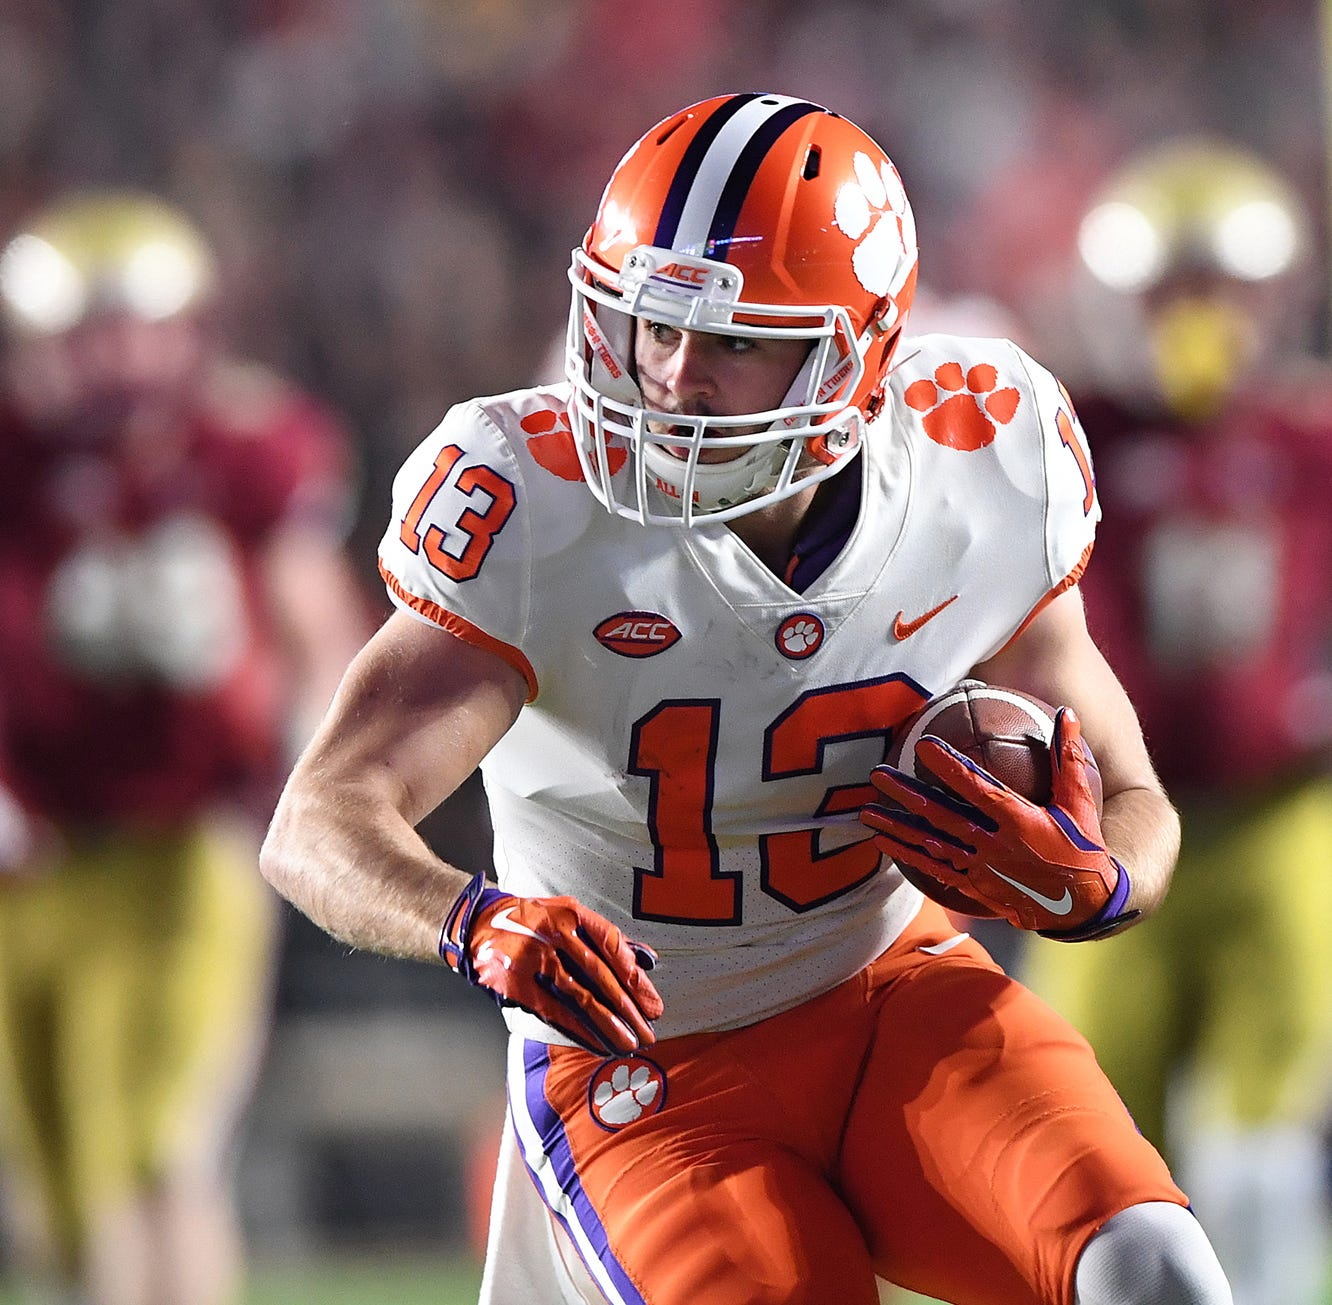 Clemson wide receiver Hunter Renfrow leaves game early with injury